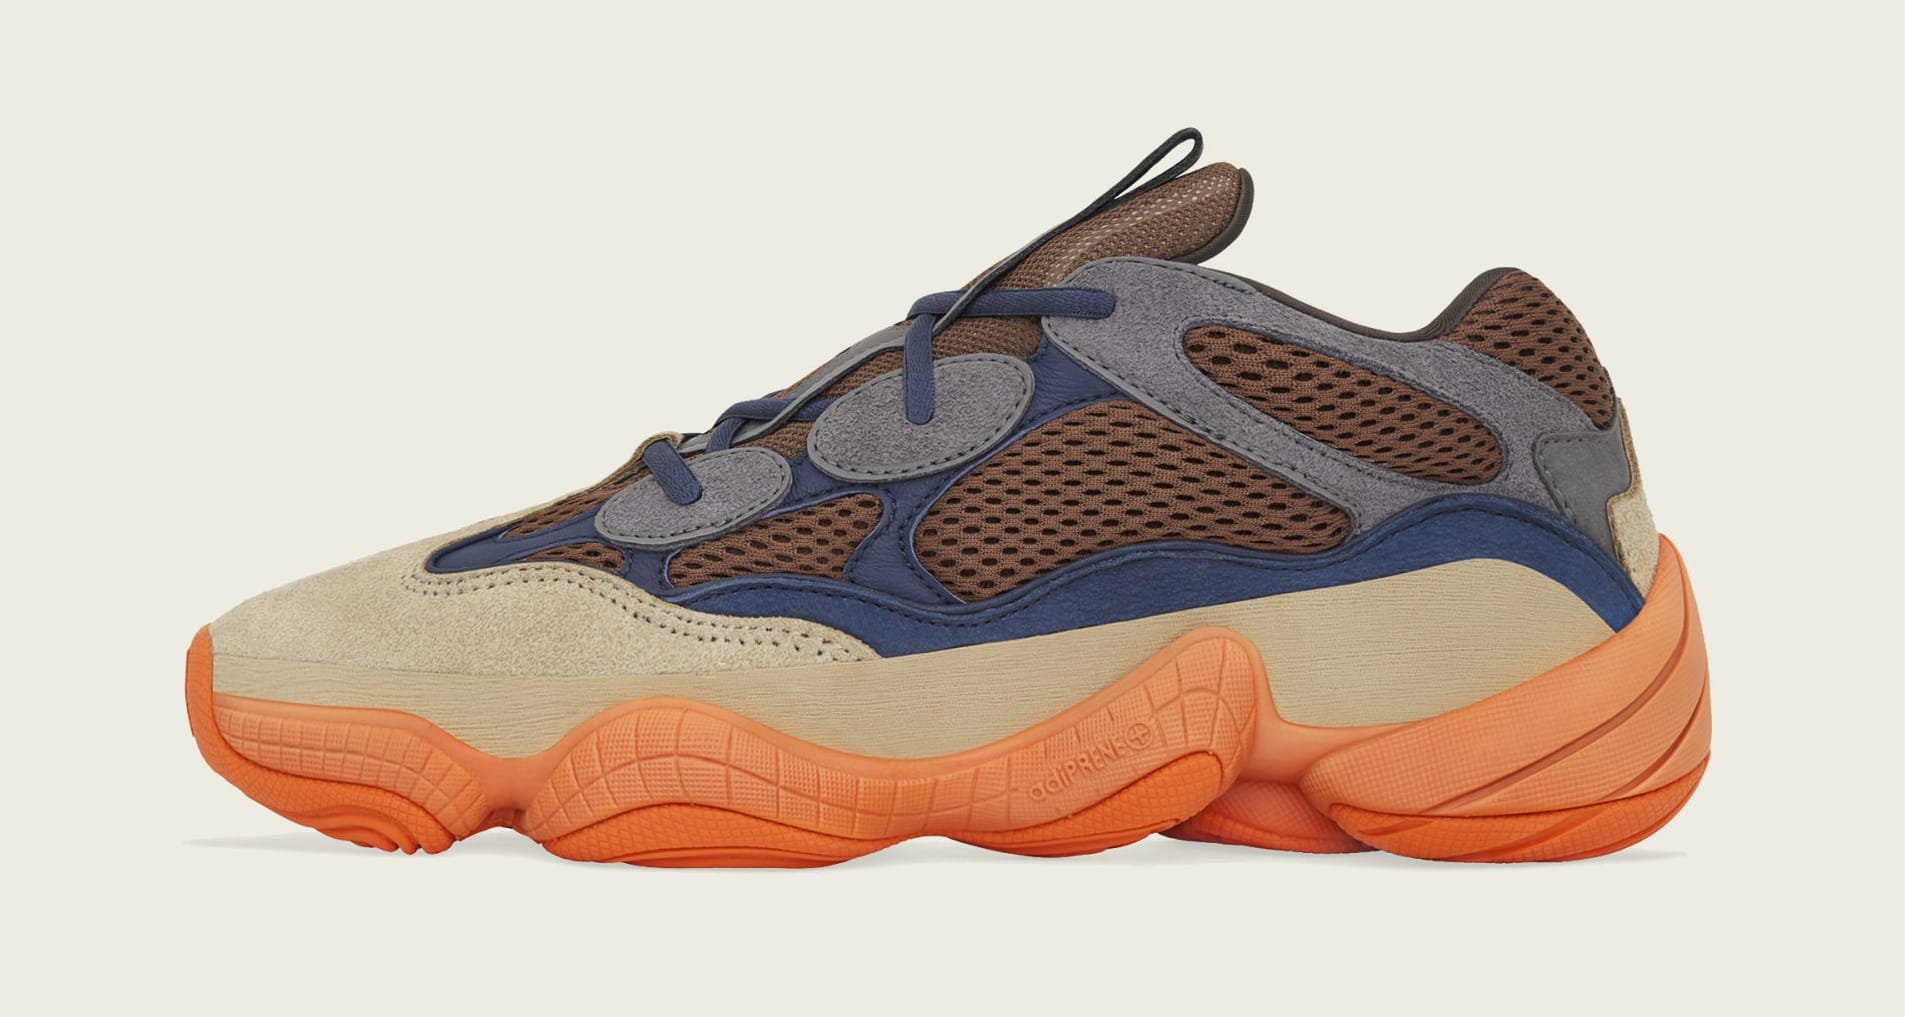 Adidas Yeezy 500 'Enflame' GZ5541 Lateral